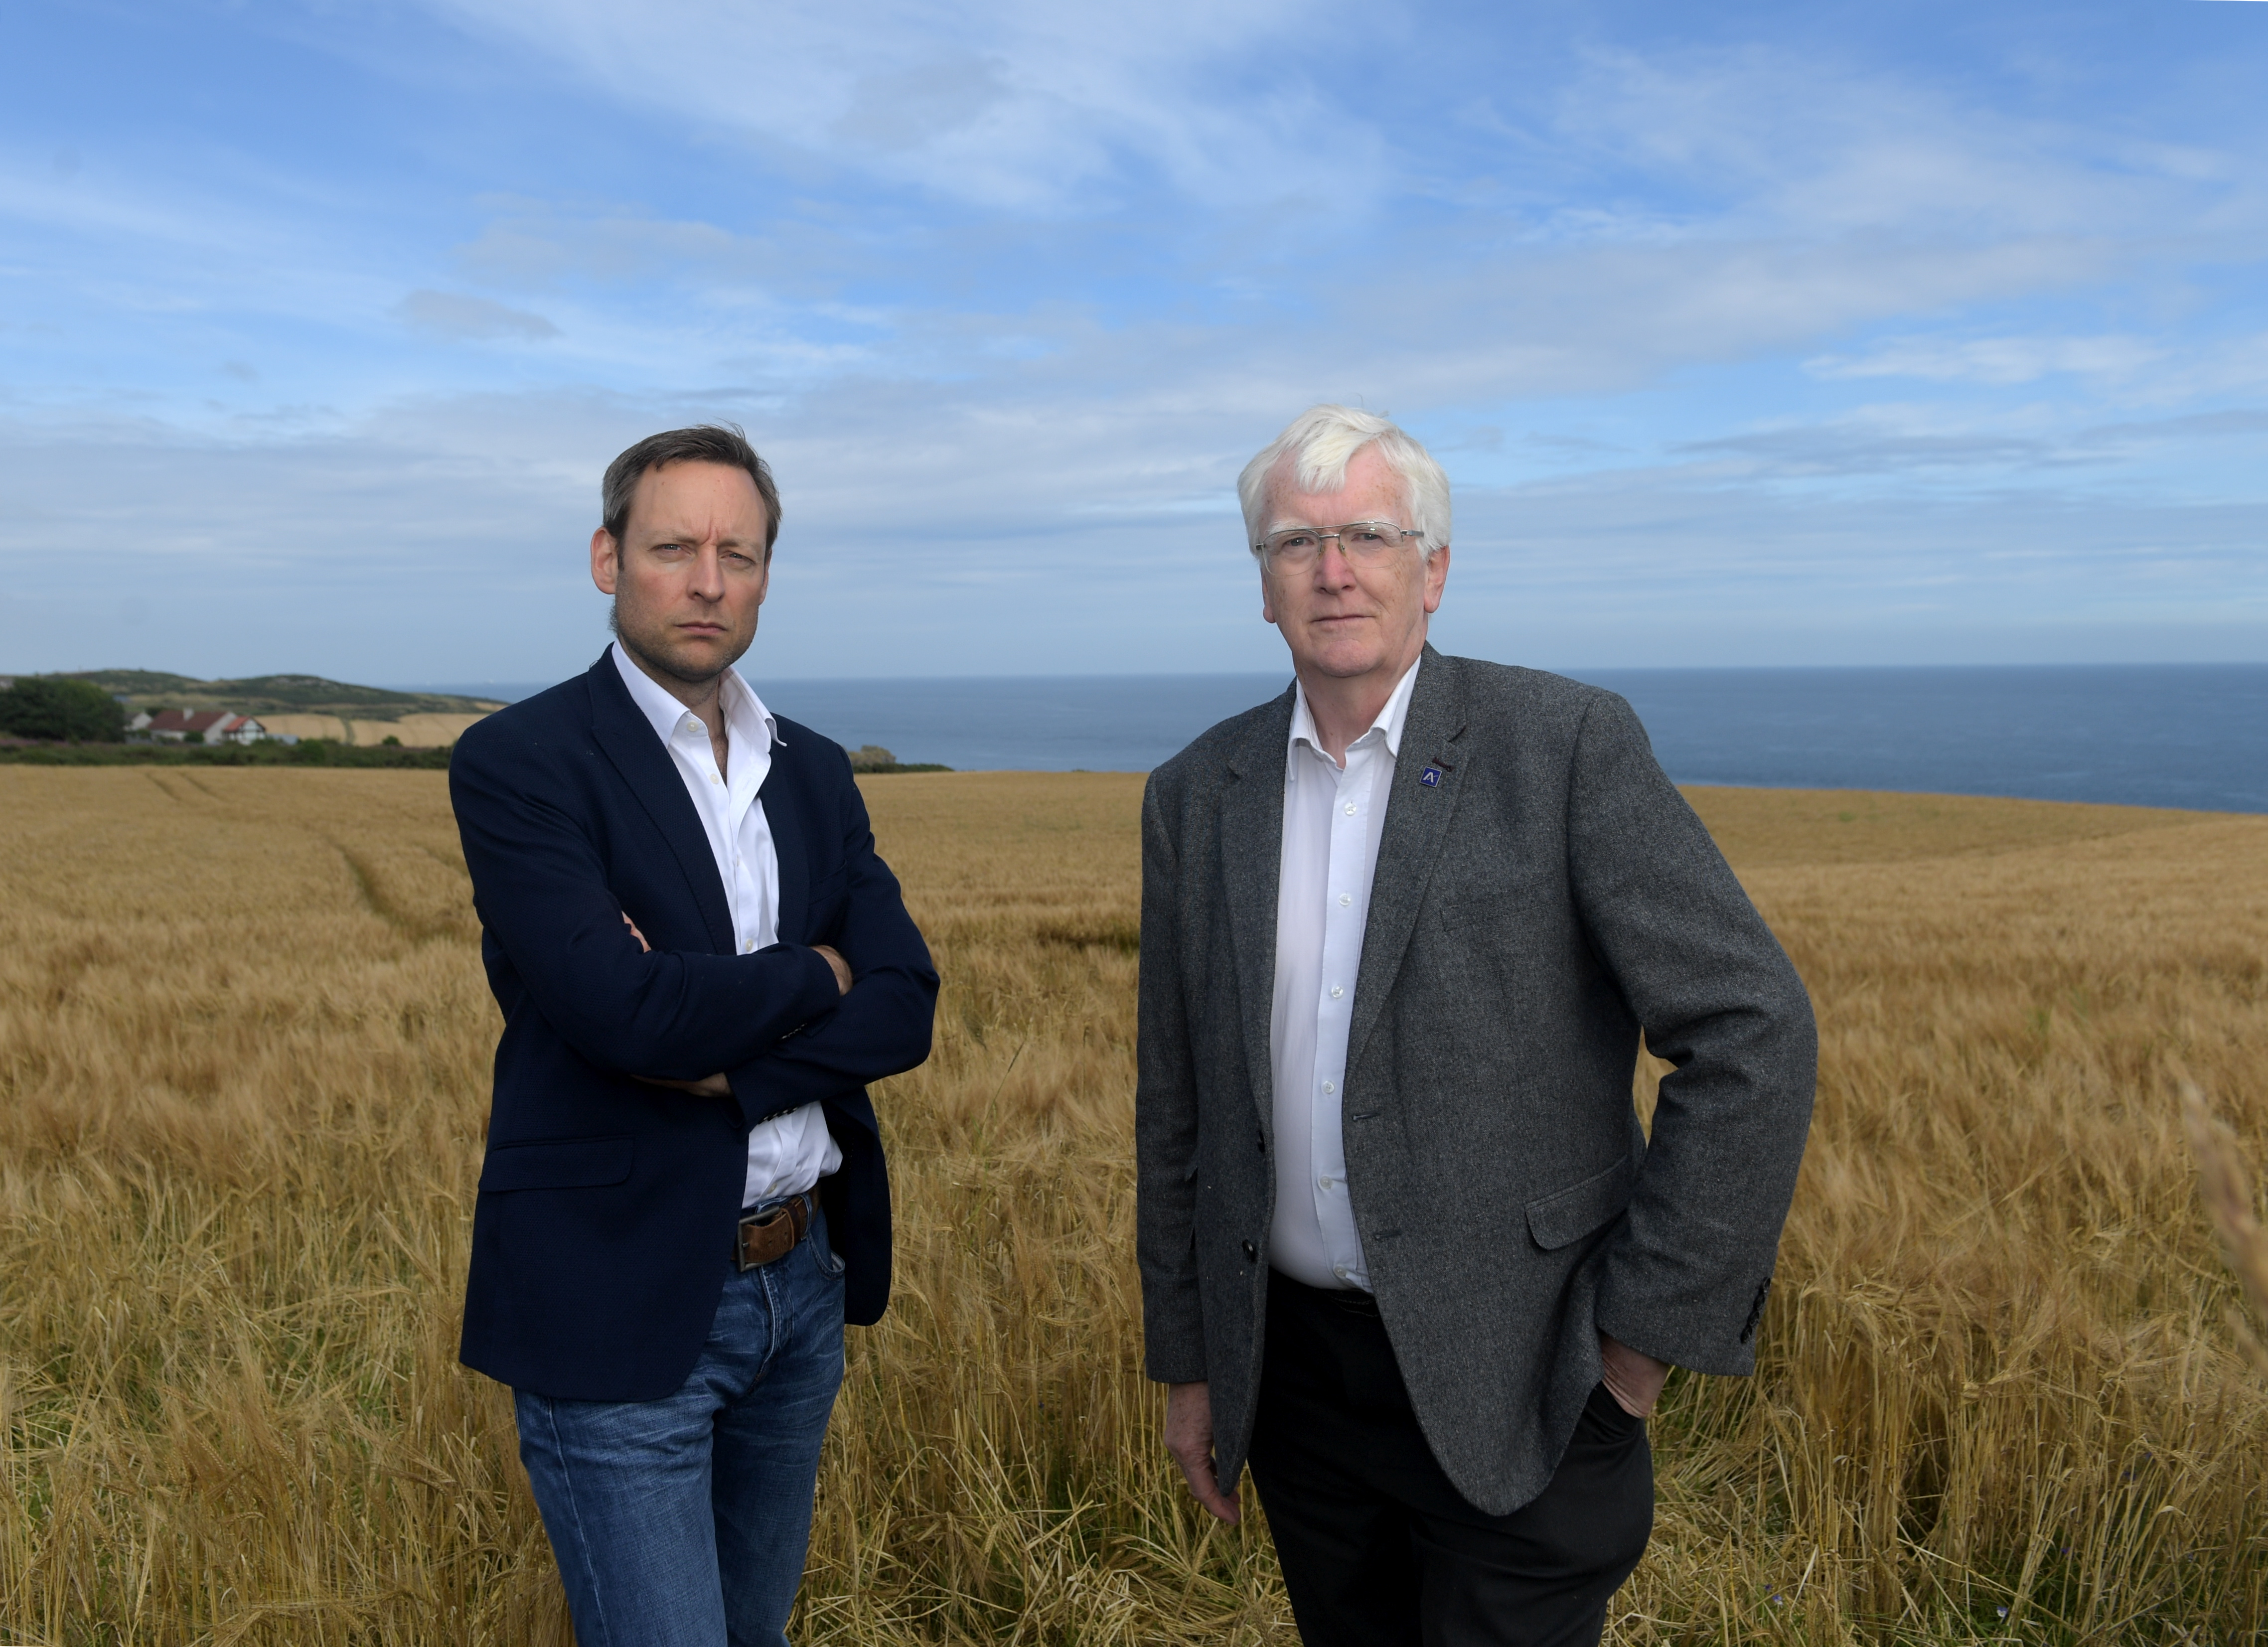 Pictured at the site are, from left, Liam Kerr MSP and Councillor Ian Mollison. 14/08/19 Picture by KATH FLANNERY